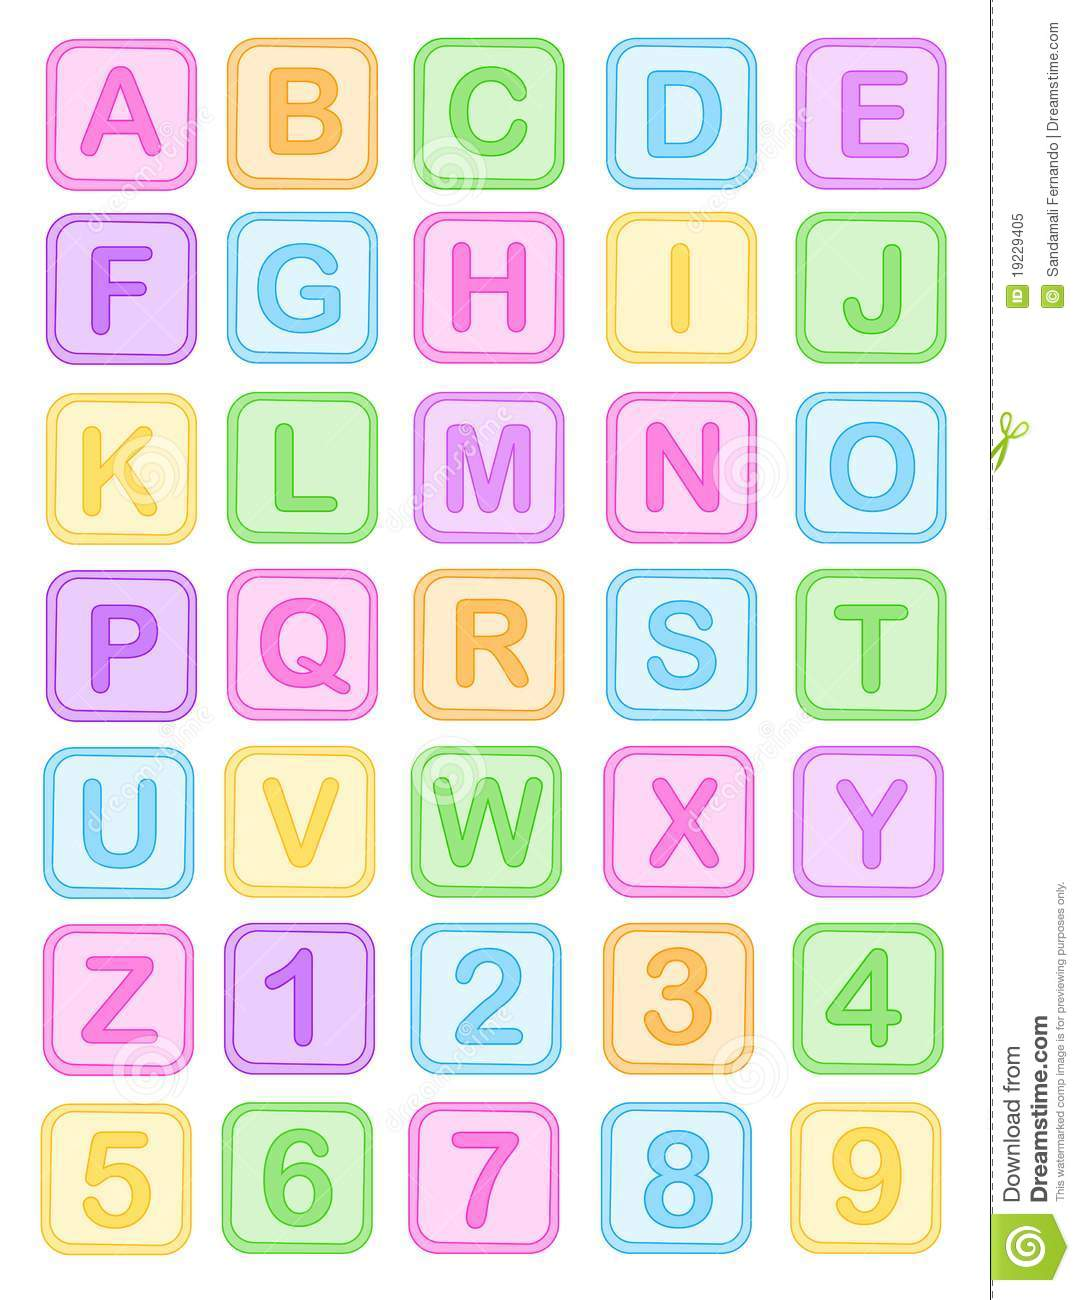 Baby clipart alphabet Block letters clipart collection Royalty